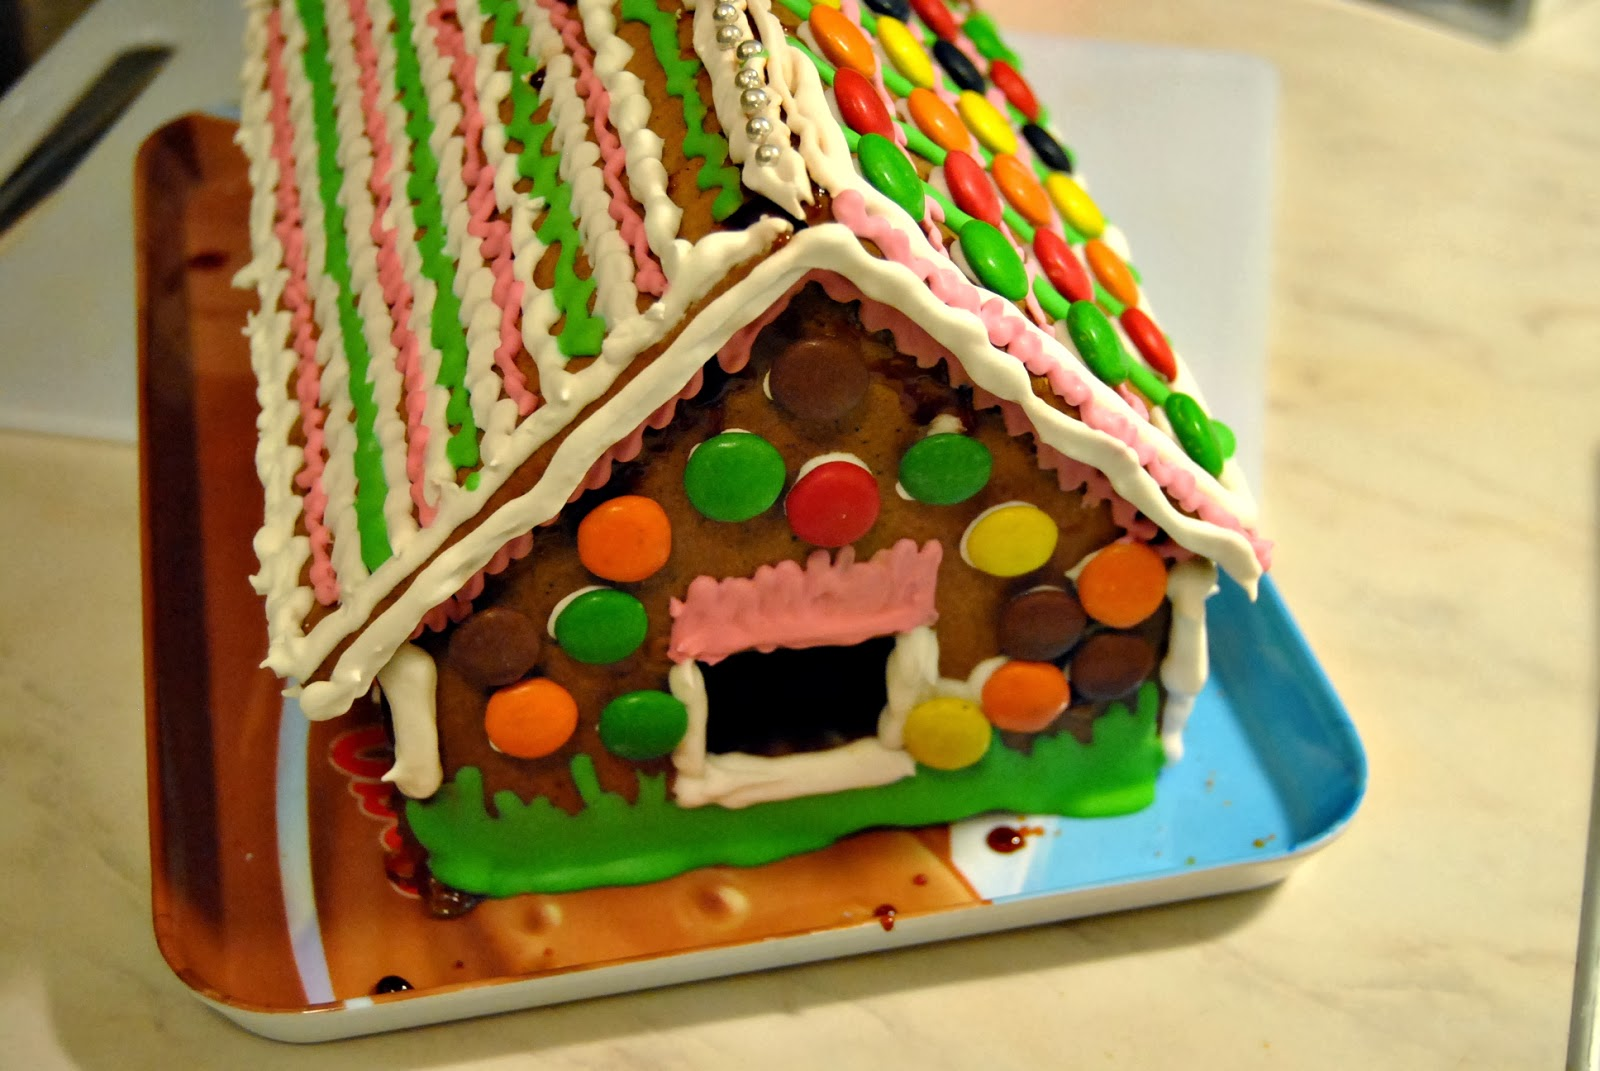 Cupcakelovers christmas gingerbread house decoration ideas for Gingerbread decorations